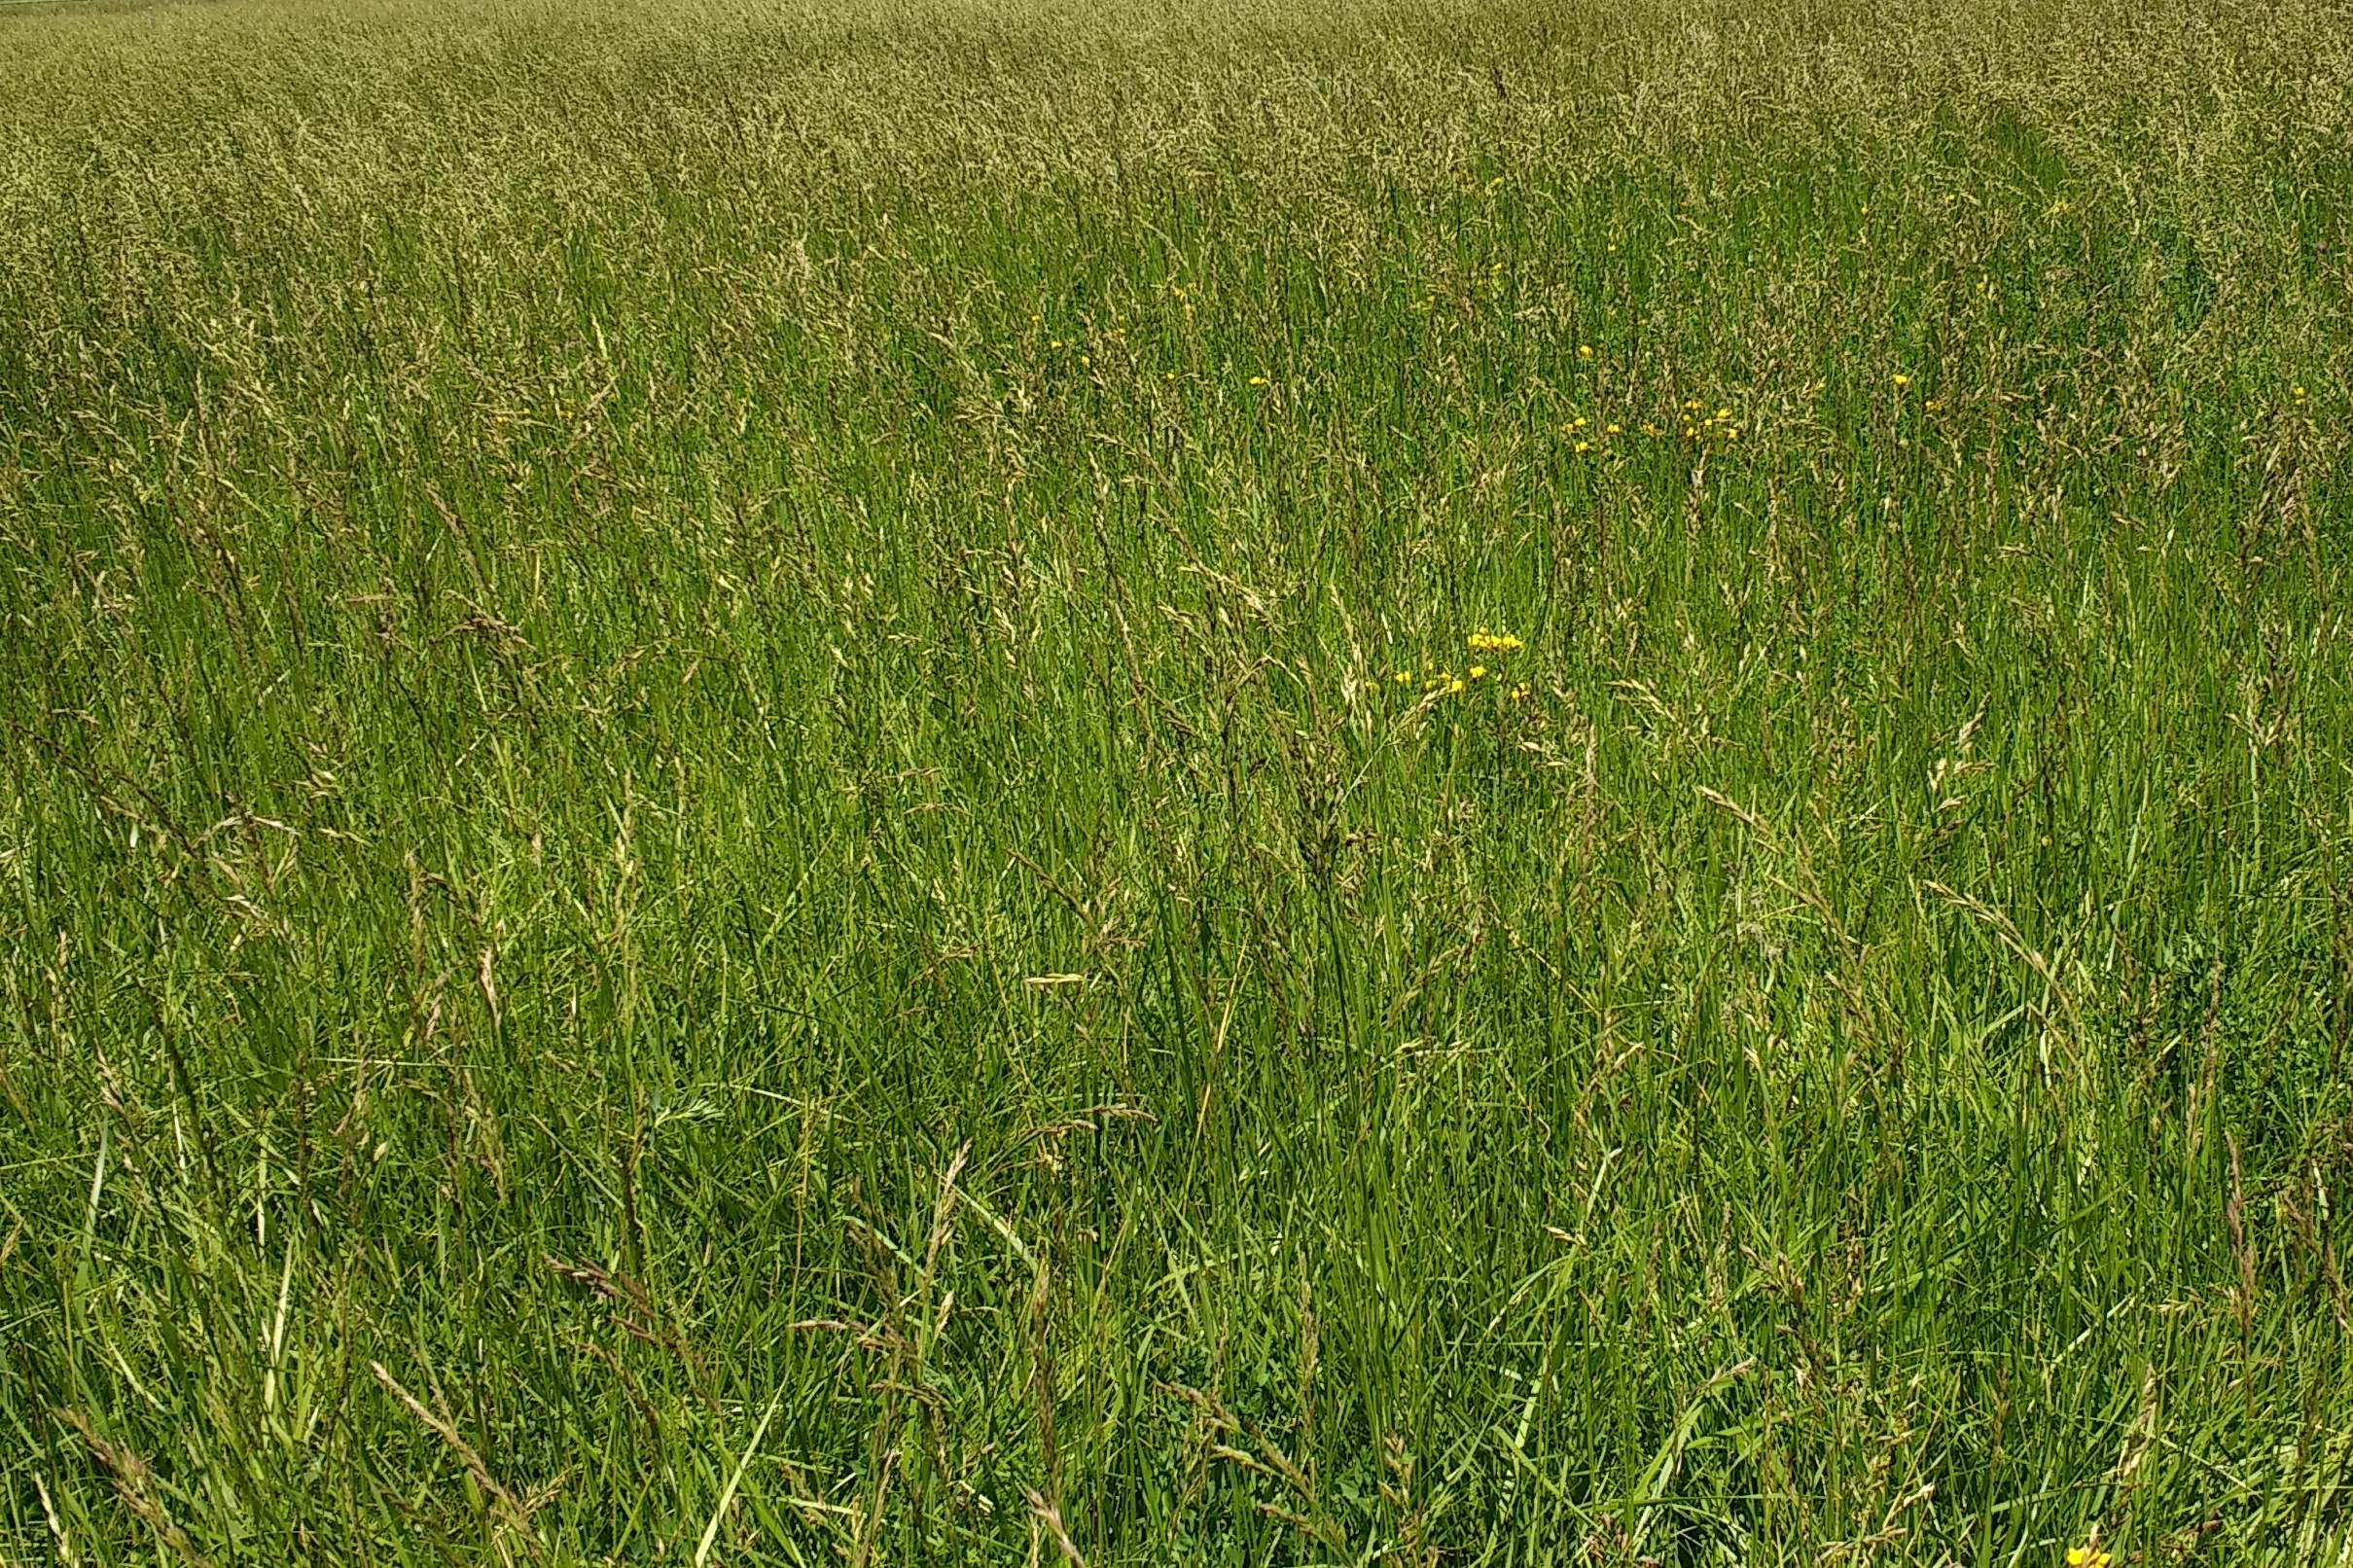 Picture of a field of different pasture grasses